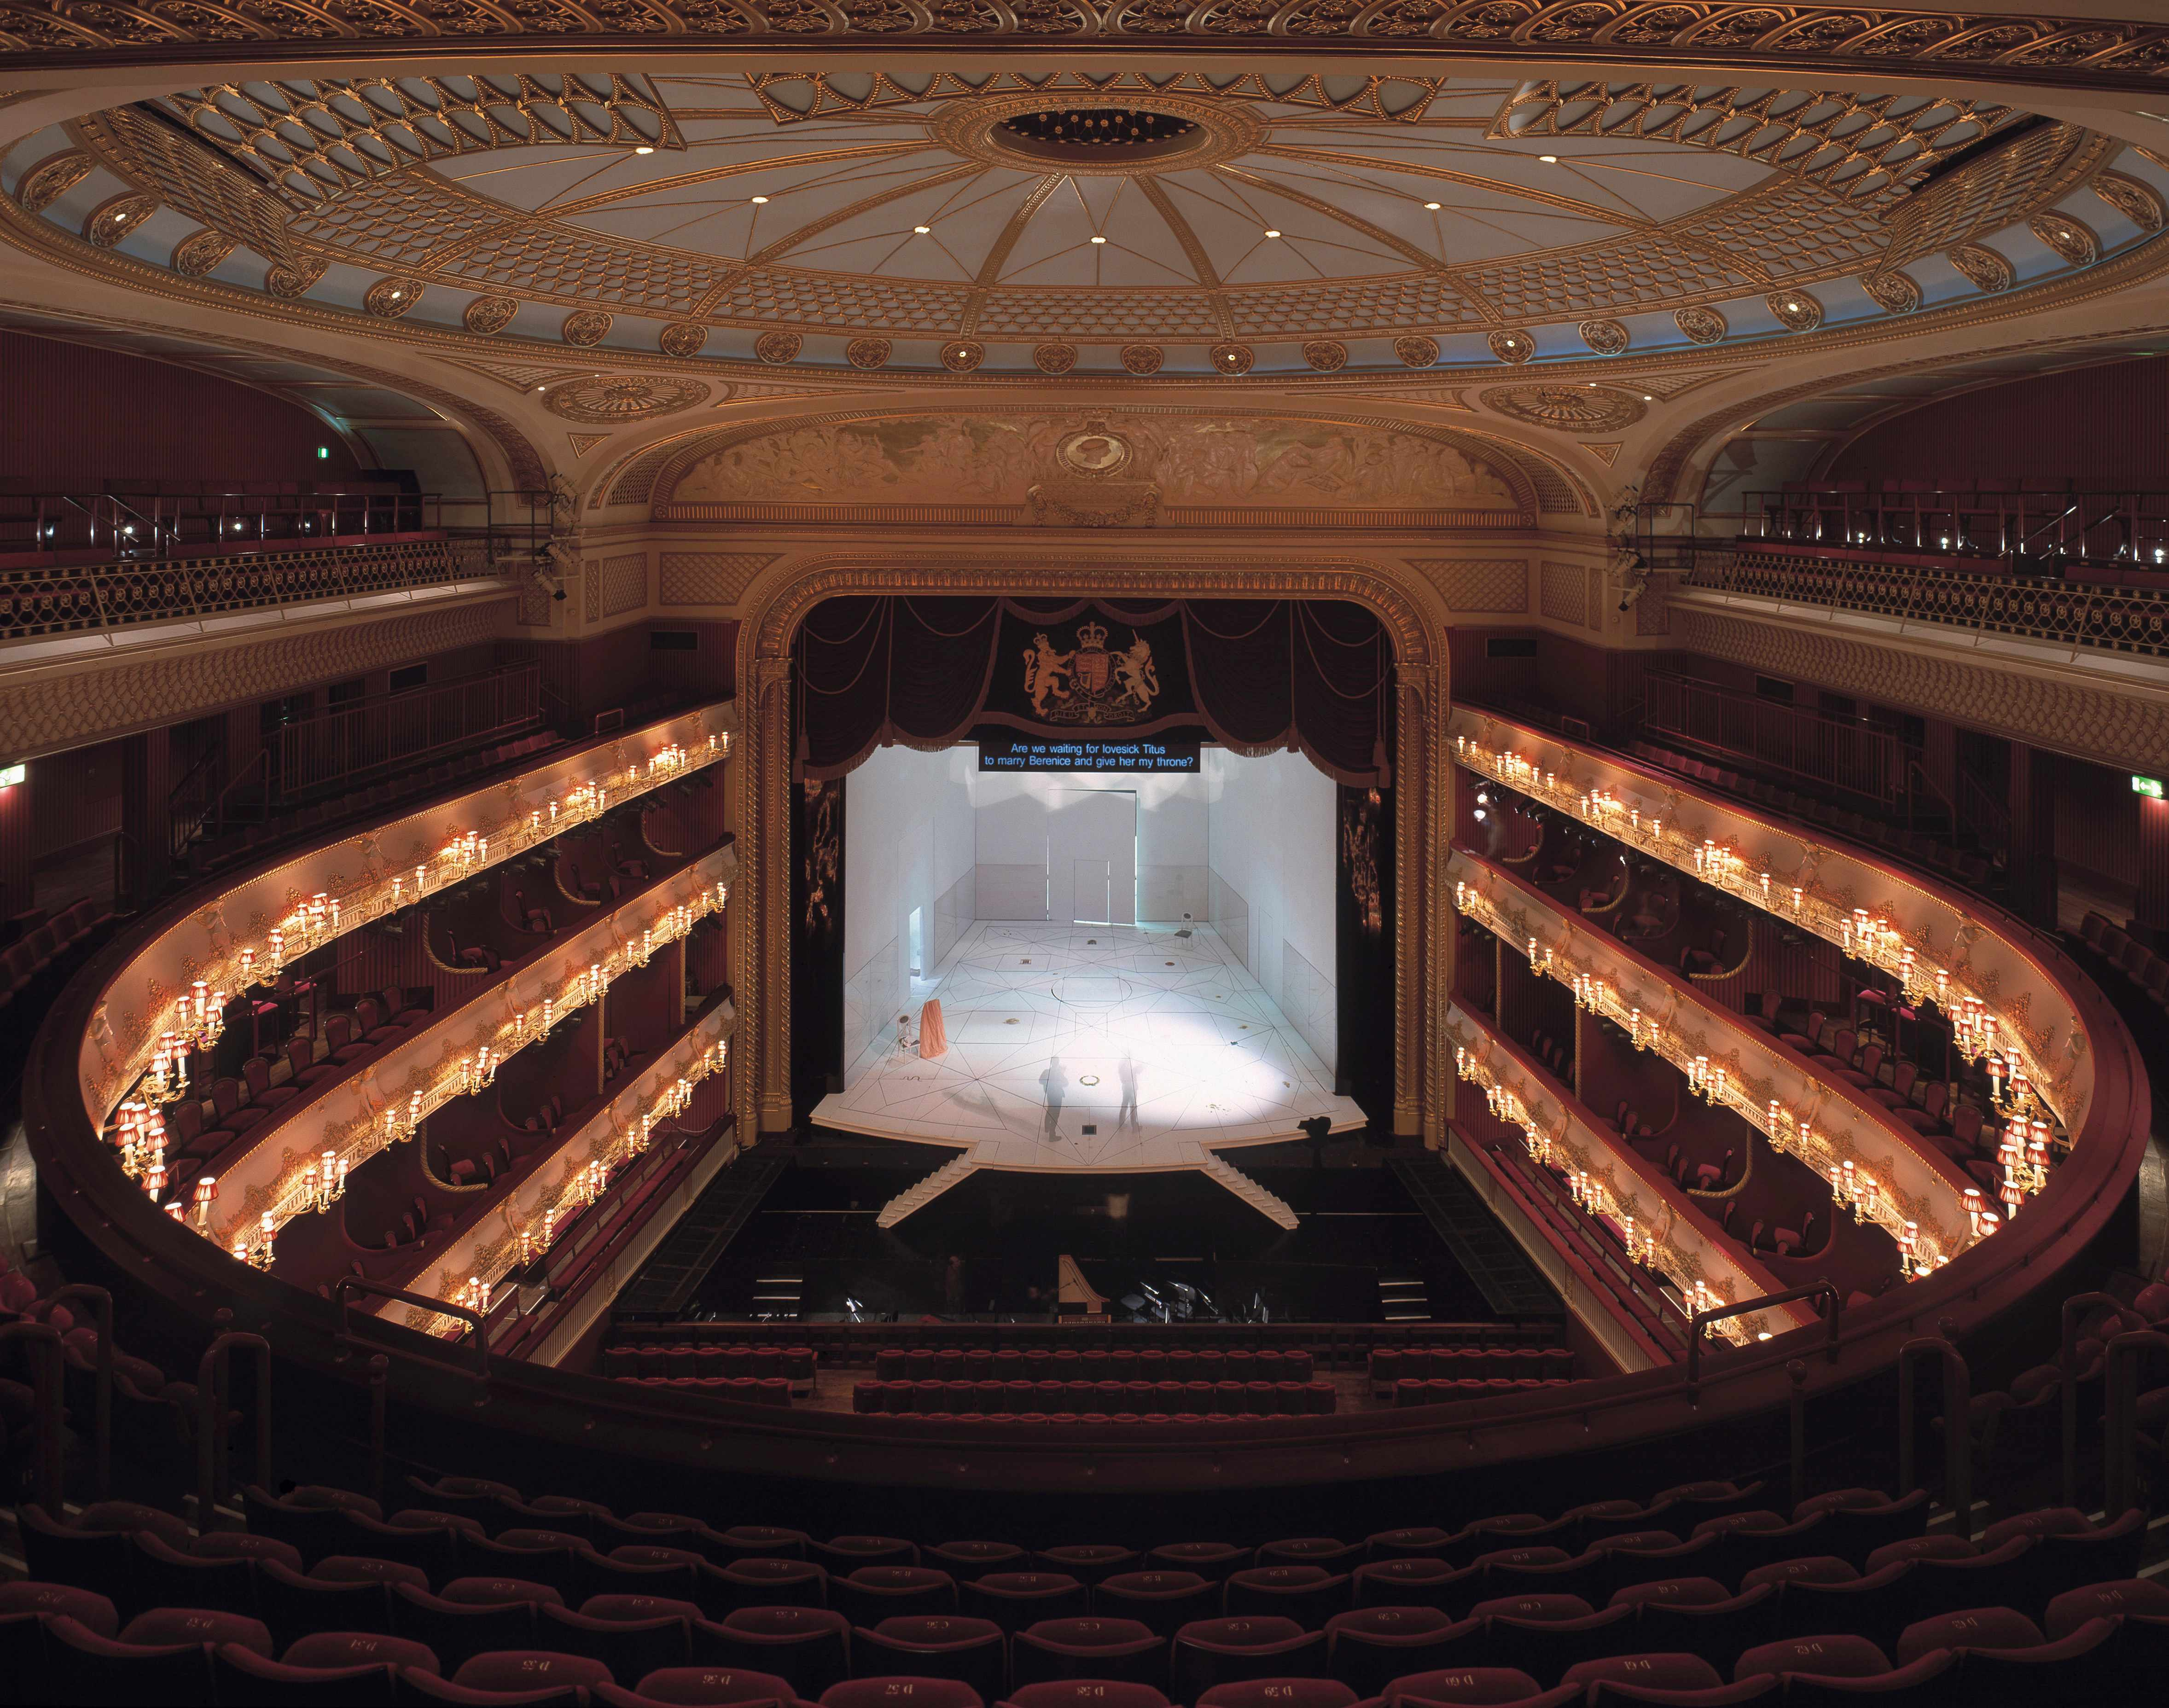 The Royal Opera House. (Getty Images)